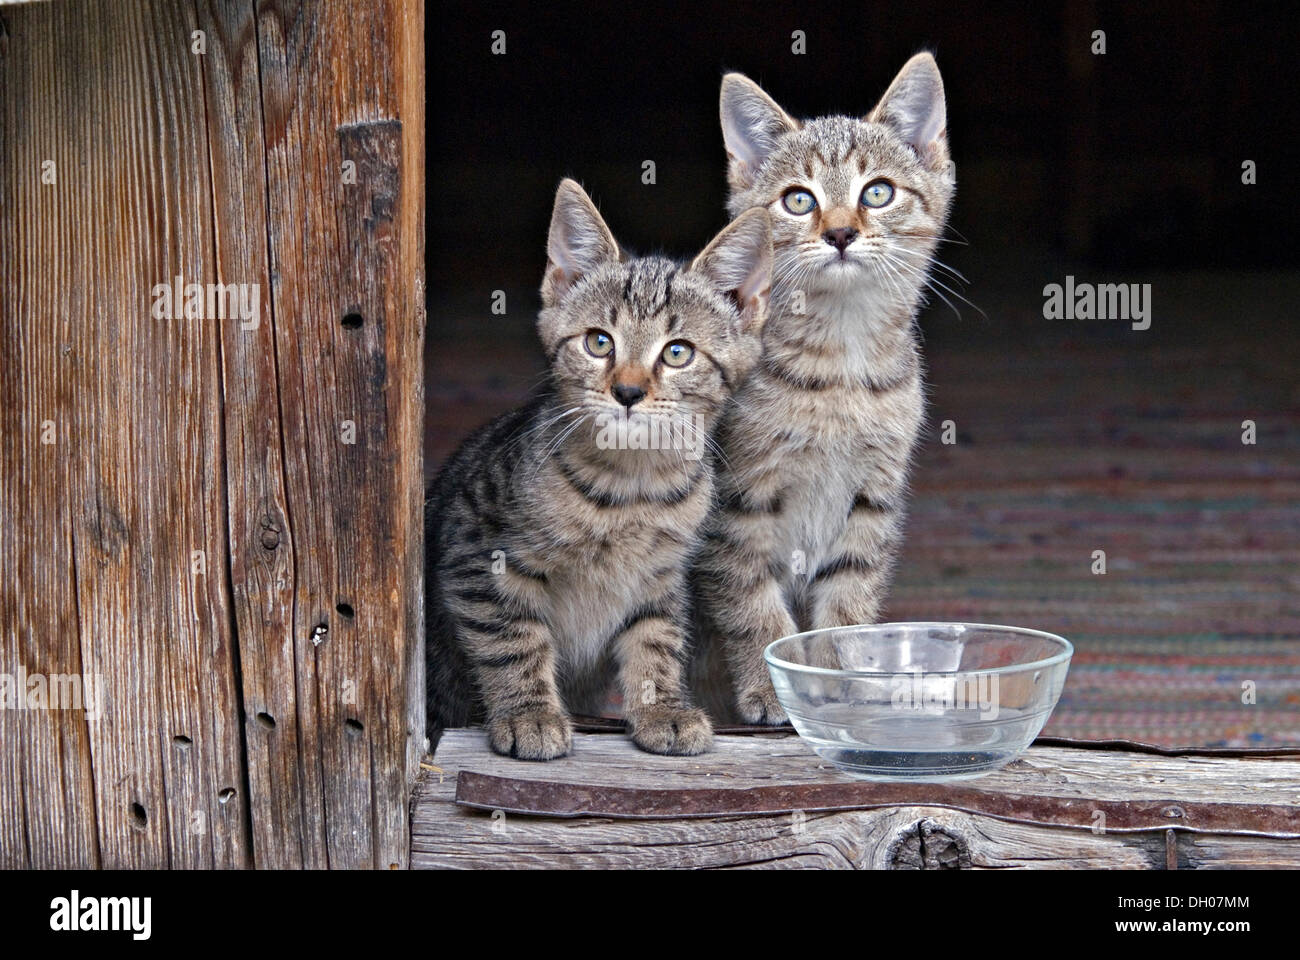 Young domestic cats, kittens, Eng-Alm, Karwendel Mountains, Tyrol, Austria, Europe - Stock Image